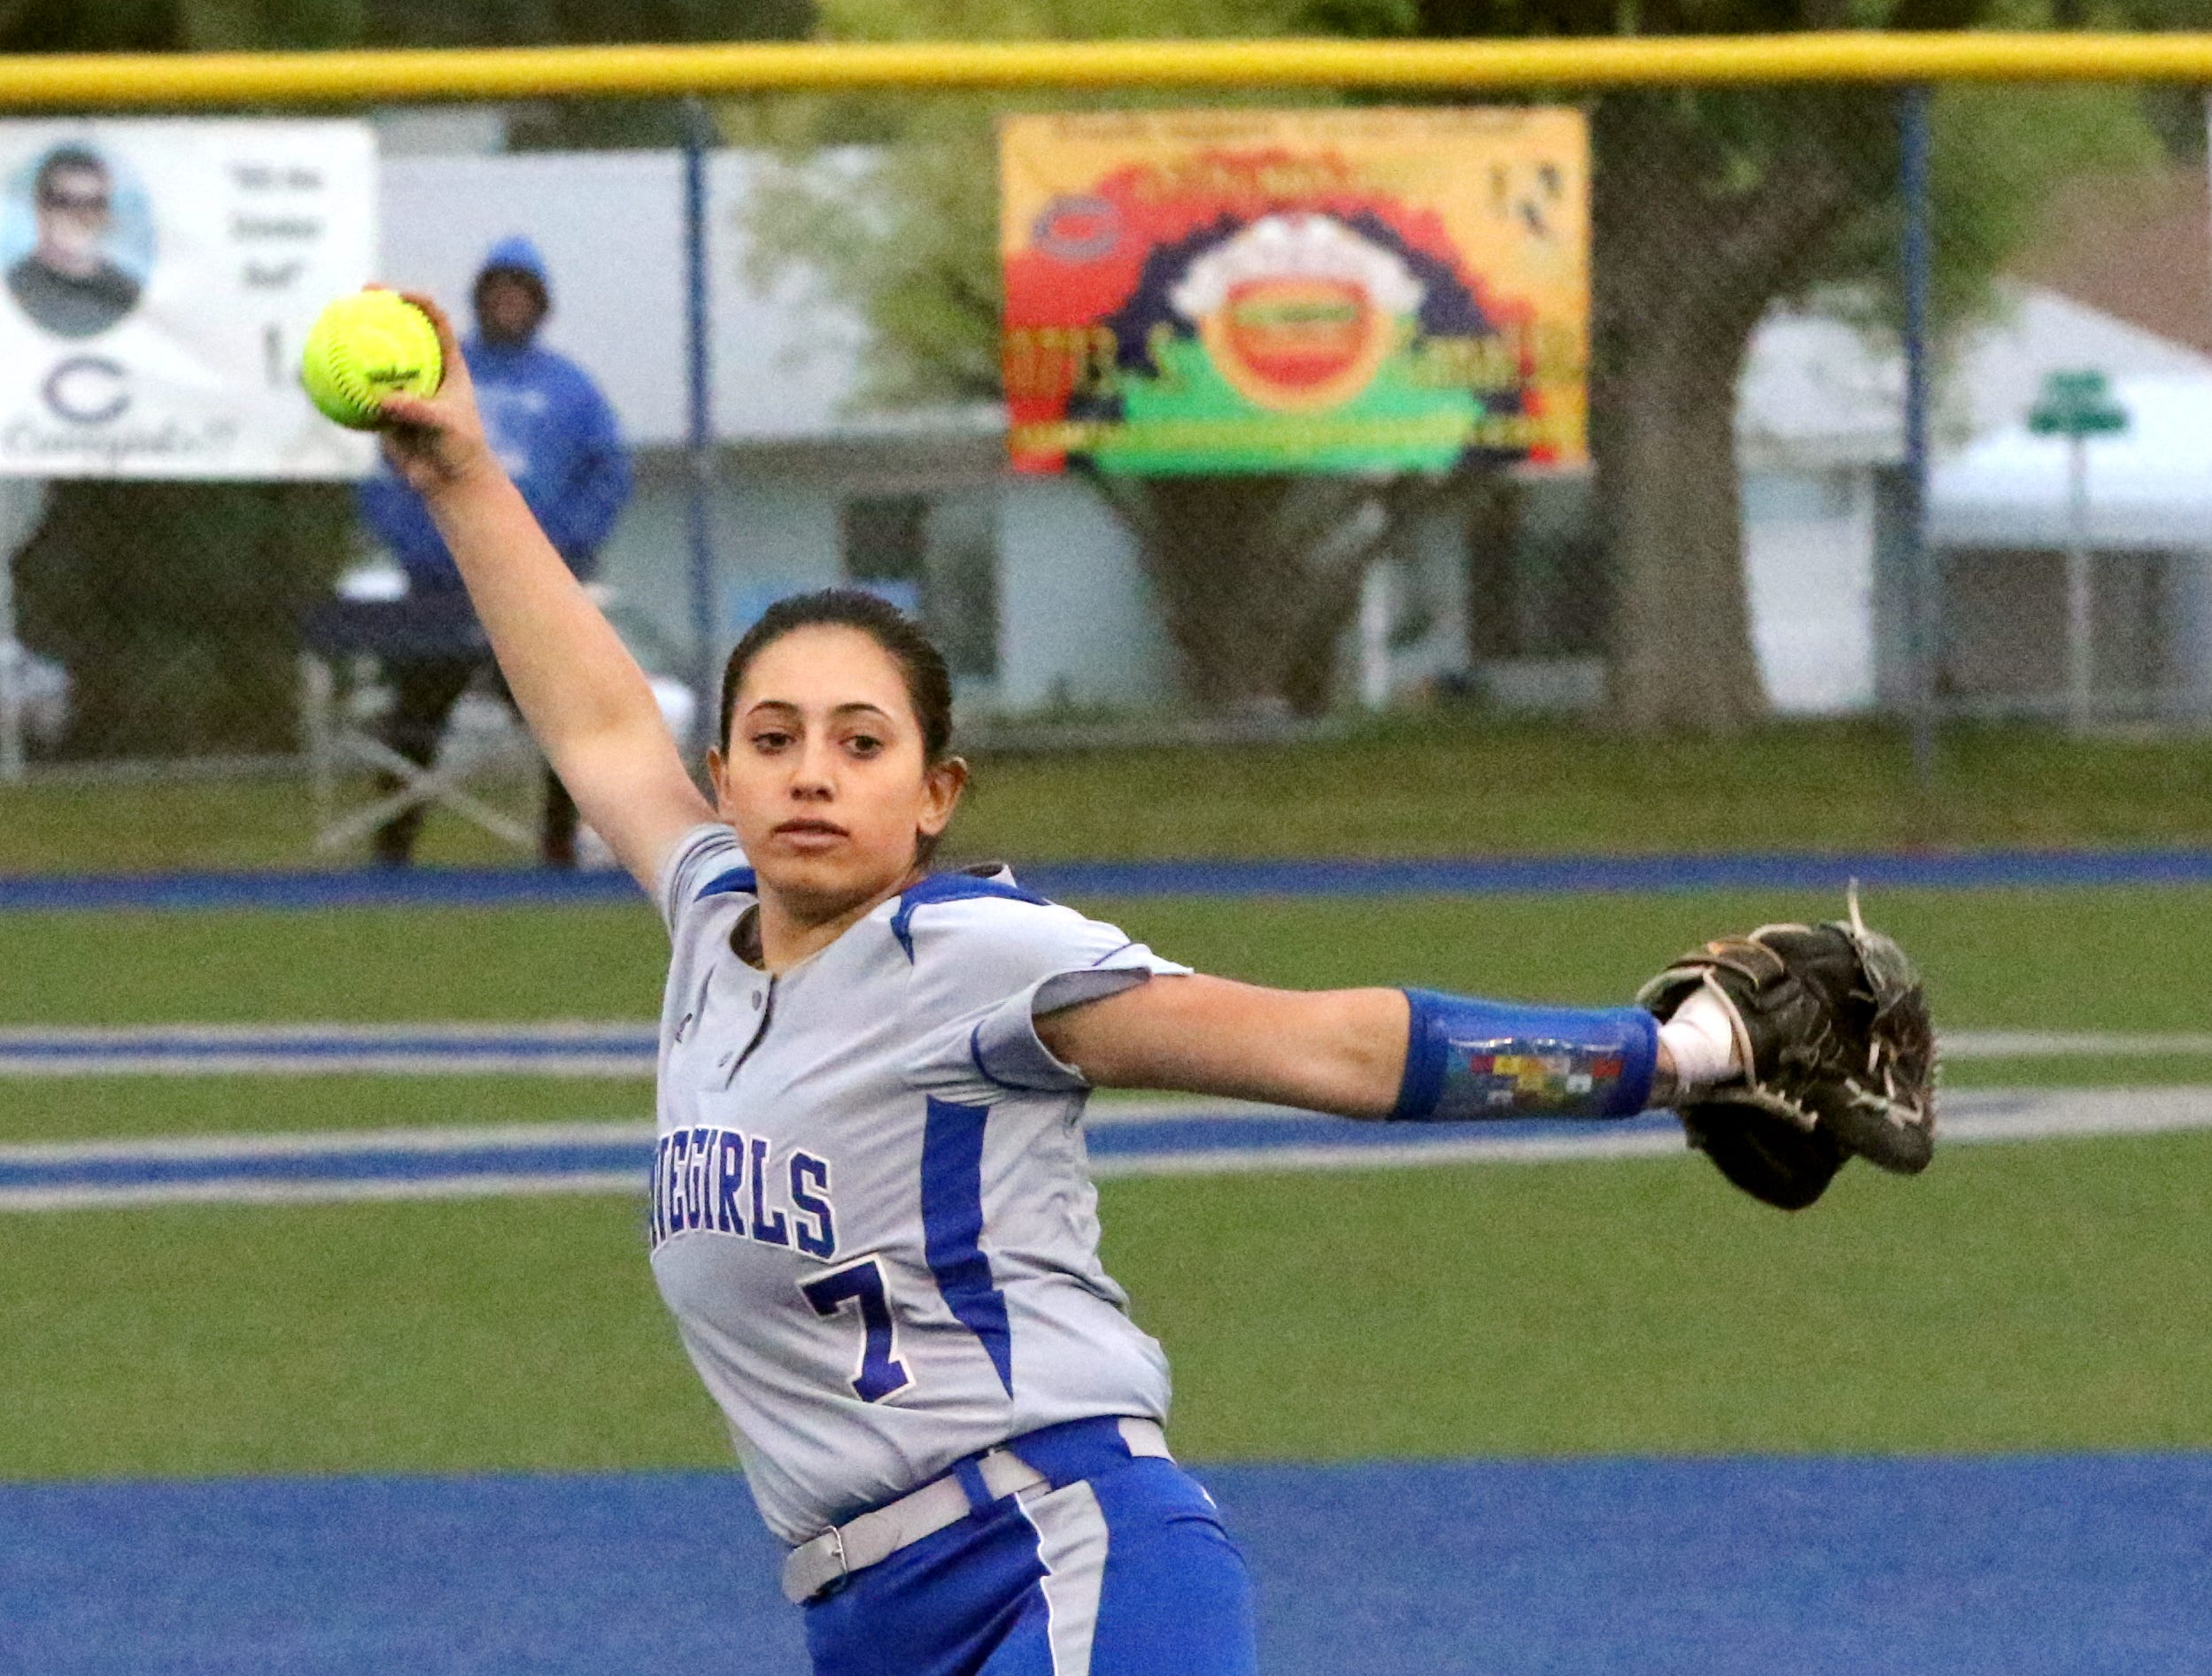 Cavegirl Ashley Hernandez pitches in Game 2 against Lovington. Hernandez threw a complete game, allowing three runs, two earned, in five innings. She threw 86 pitches in the 13-3 win.